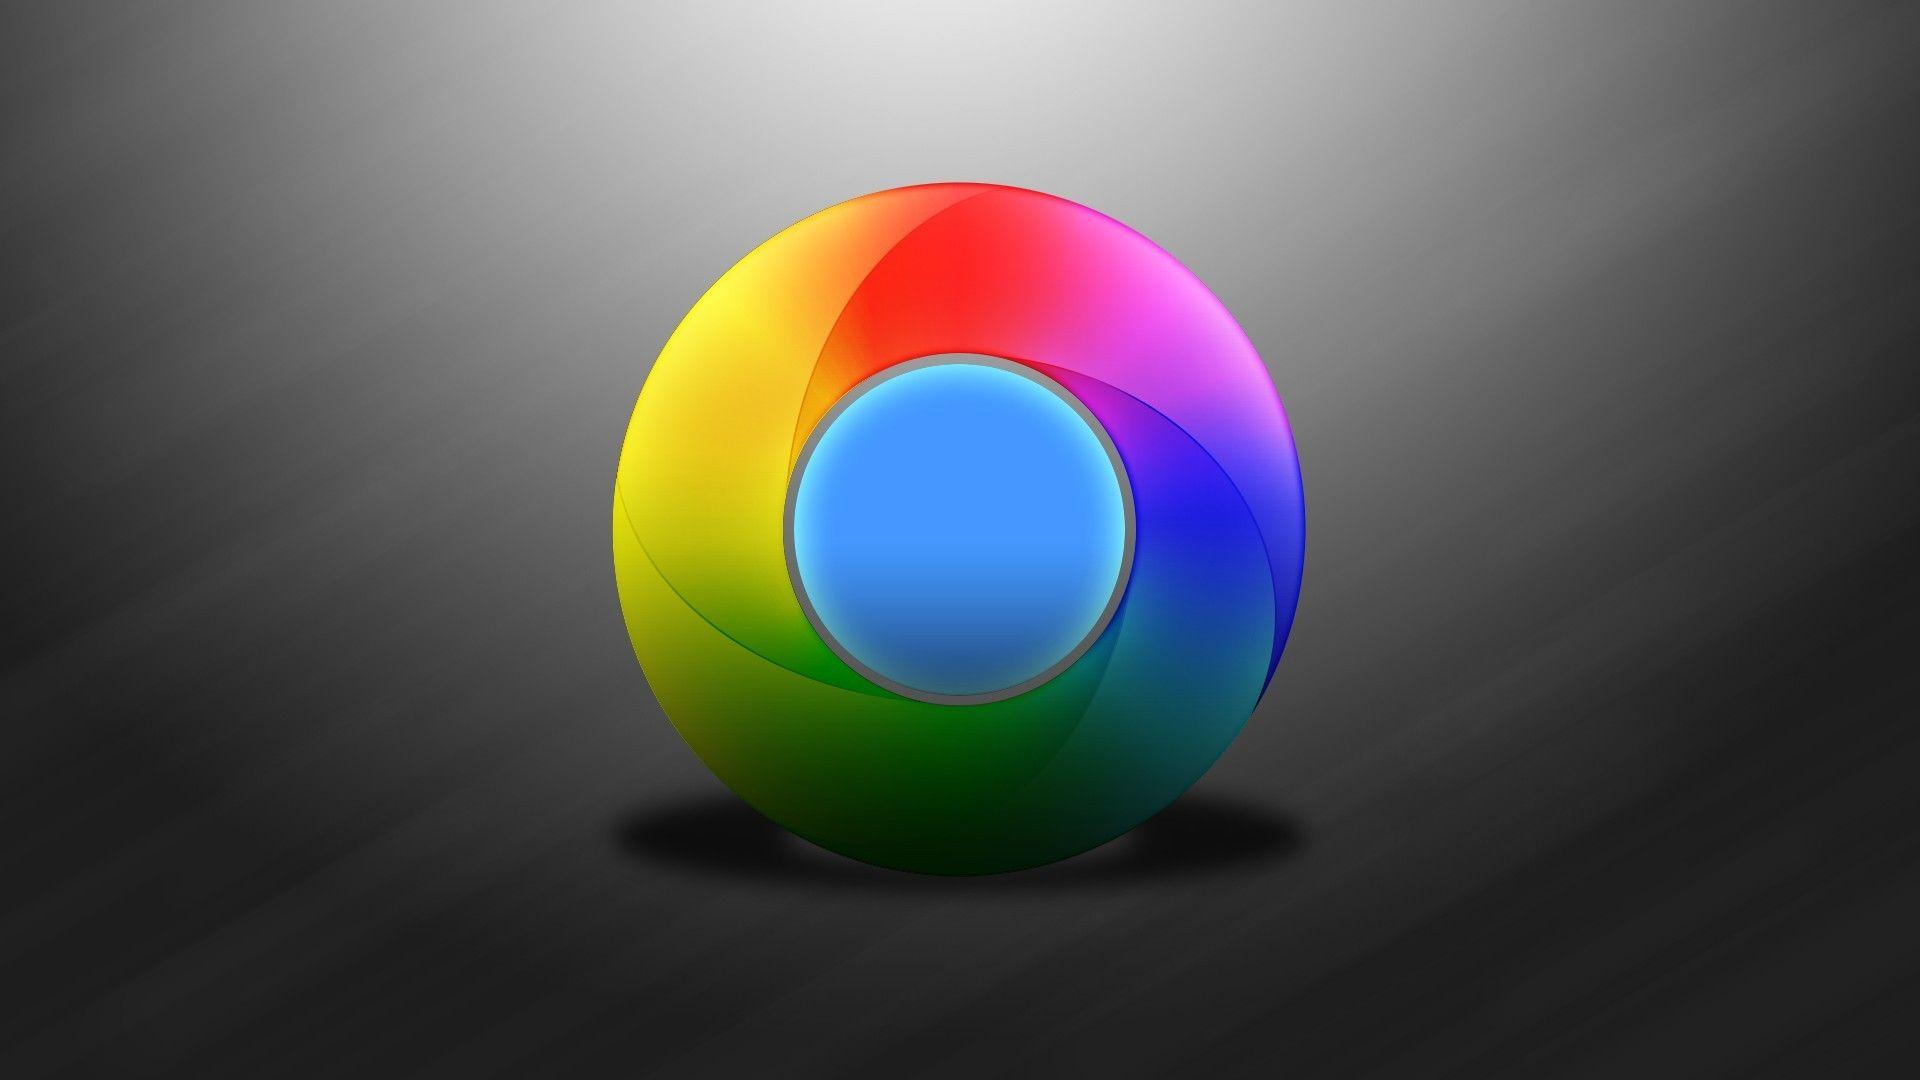 Google Chrome Wallpapers Hd 1920x1080 Wallpapers